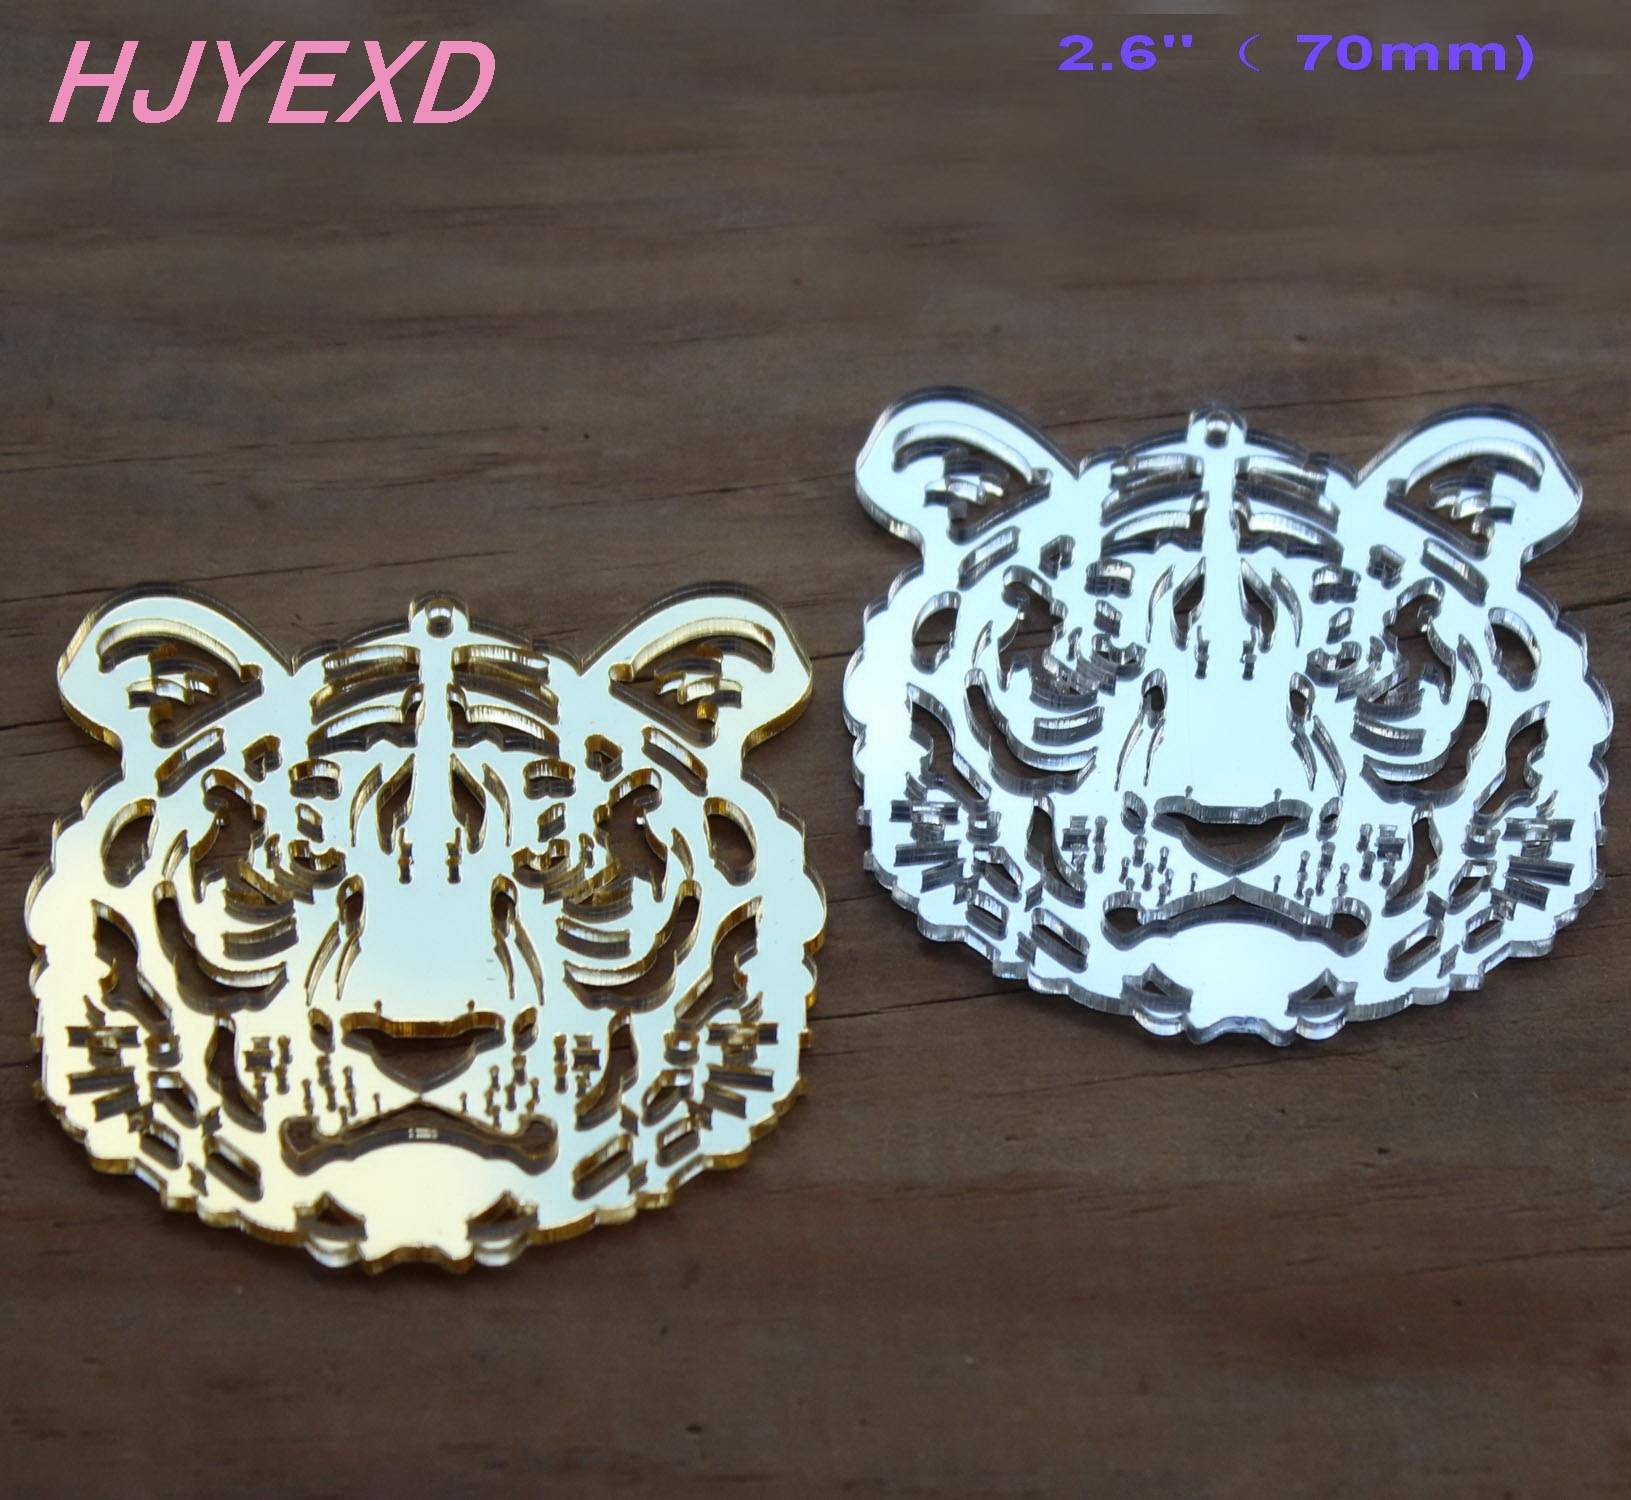 70mm Acrylic Tiger Earrings Jewelry Accessories Gold Mirror, Silver Mirror Laser Cutout 2.8